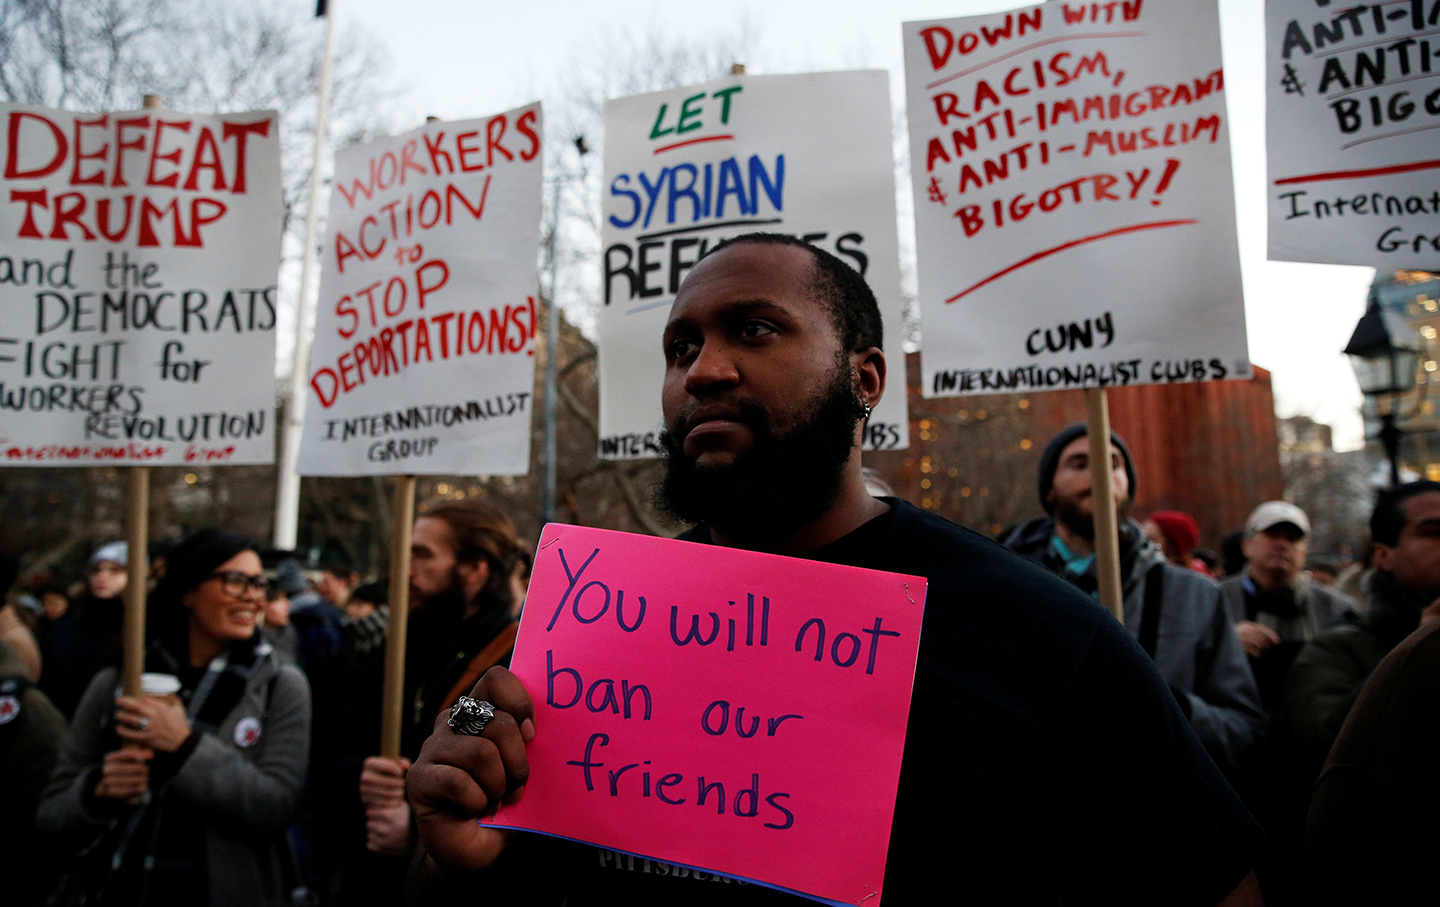 Isaiah Dupree holds a sign as demonstrators gather at Washington Square Park